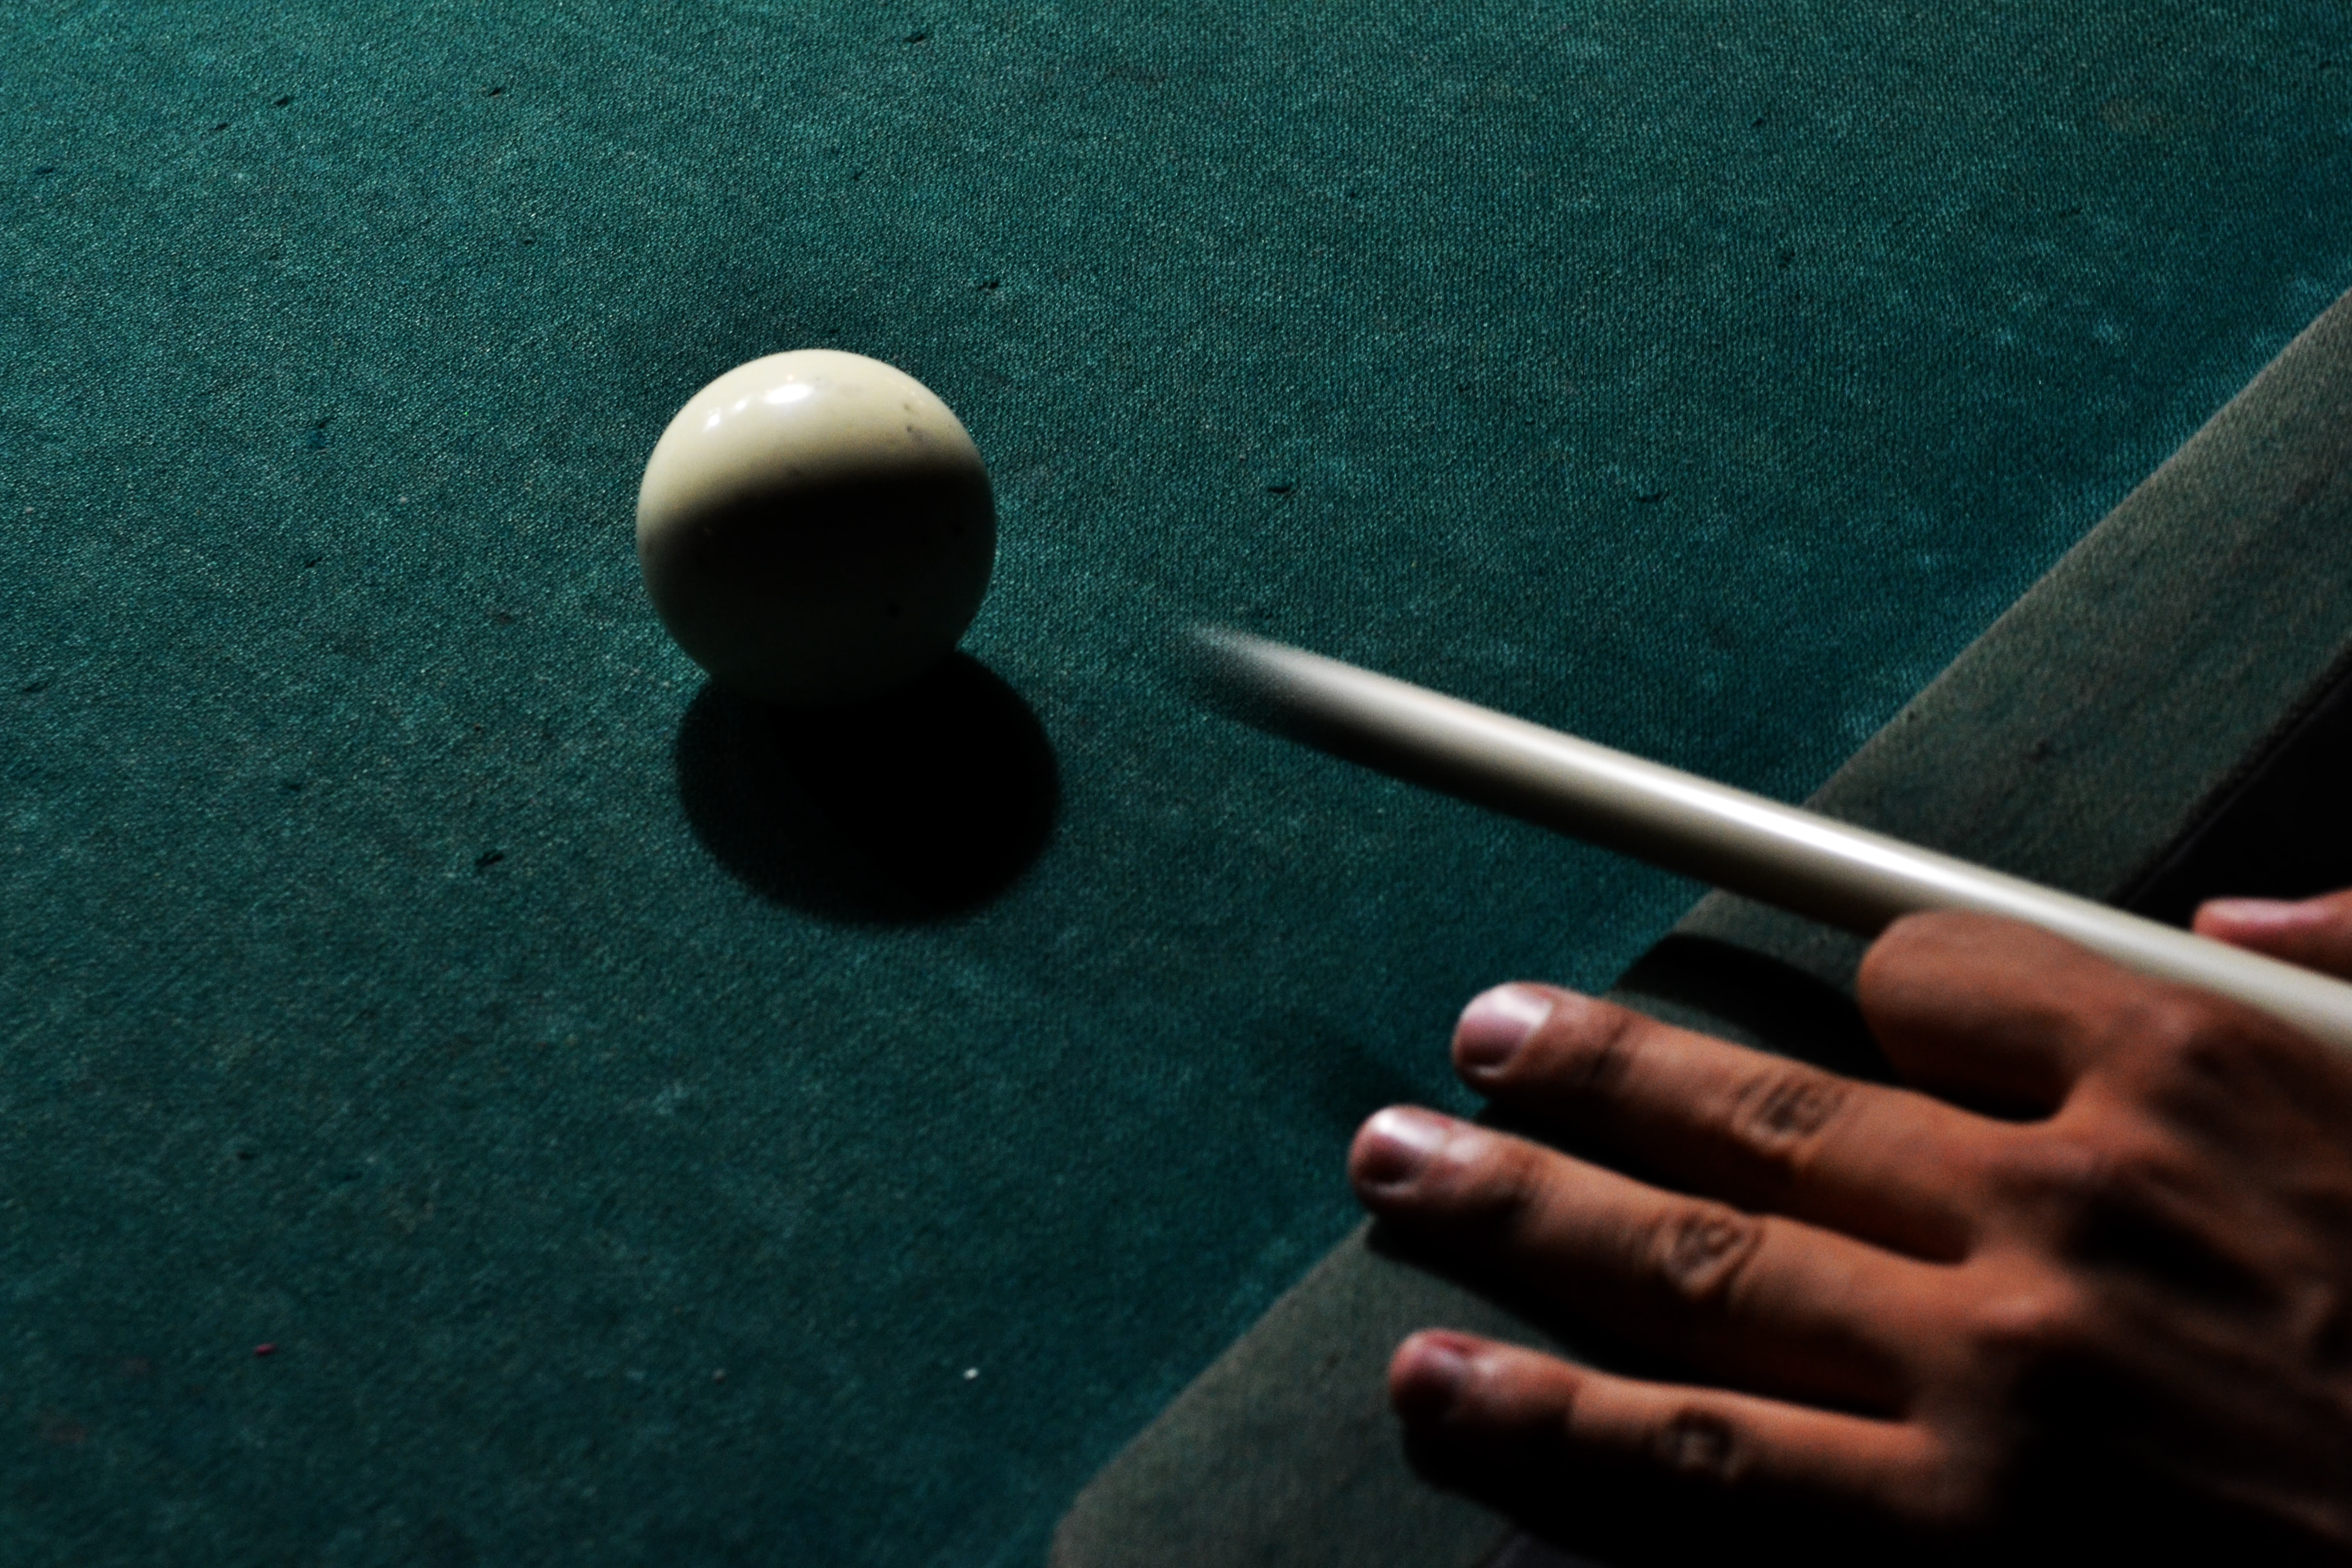 person holding brown cue stick